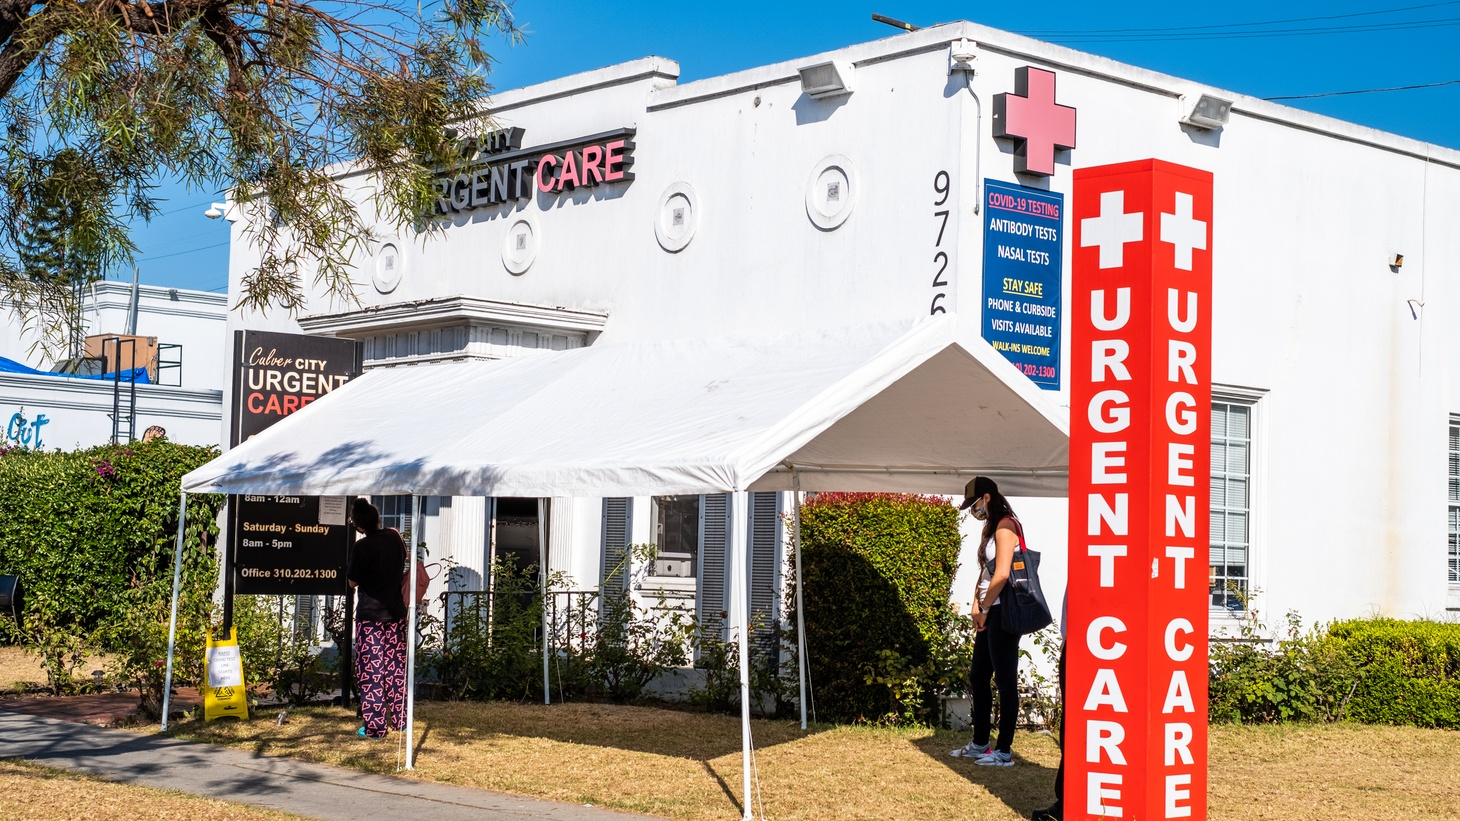 Culver City Urgent Care does COVID-19 antibody tests and nasal tests.